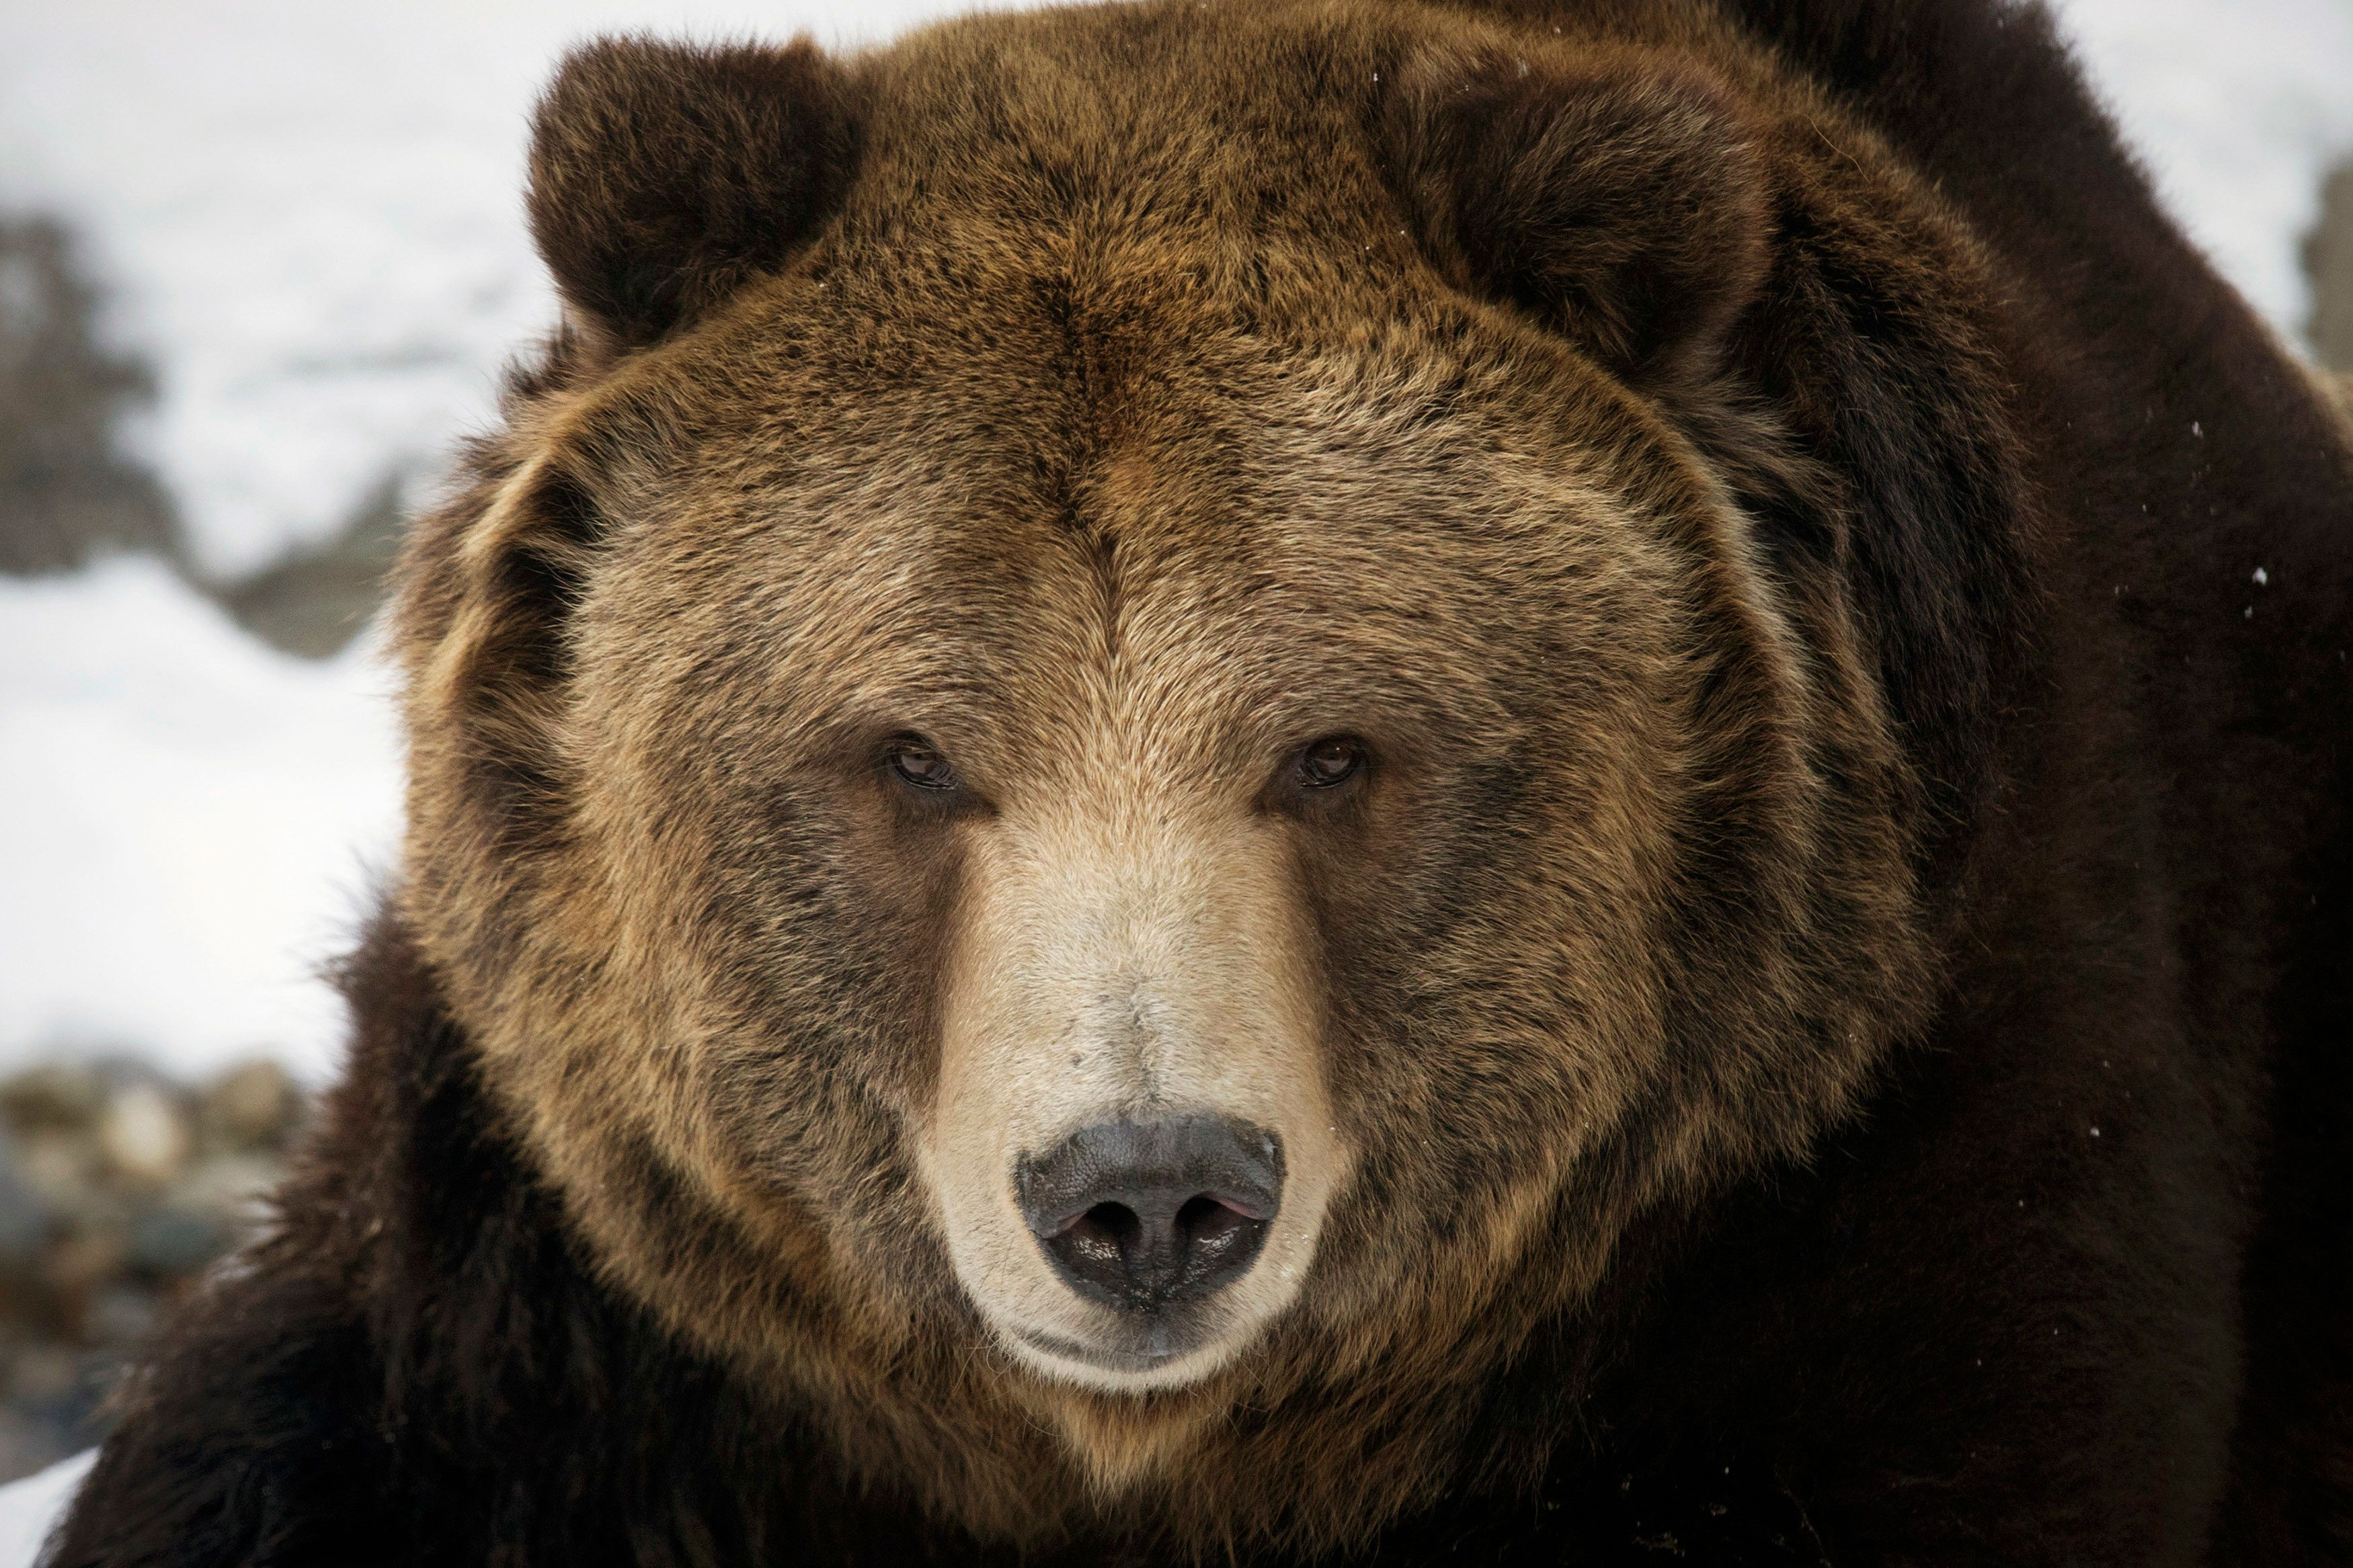 The anti-immigration Federation for American Immigration Reform said in a report Tuesday that if bears were included in publi